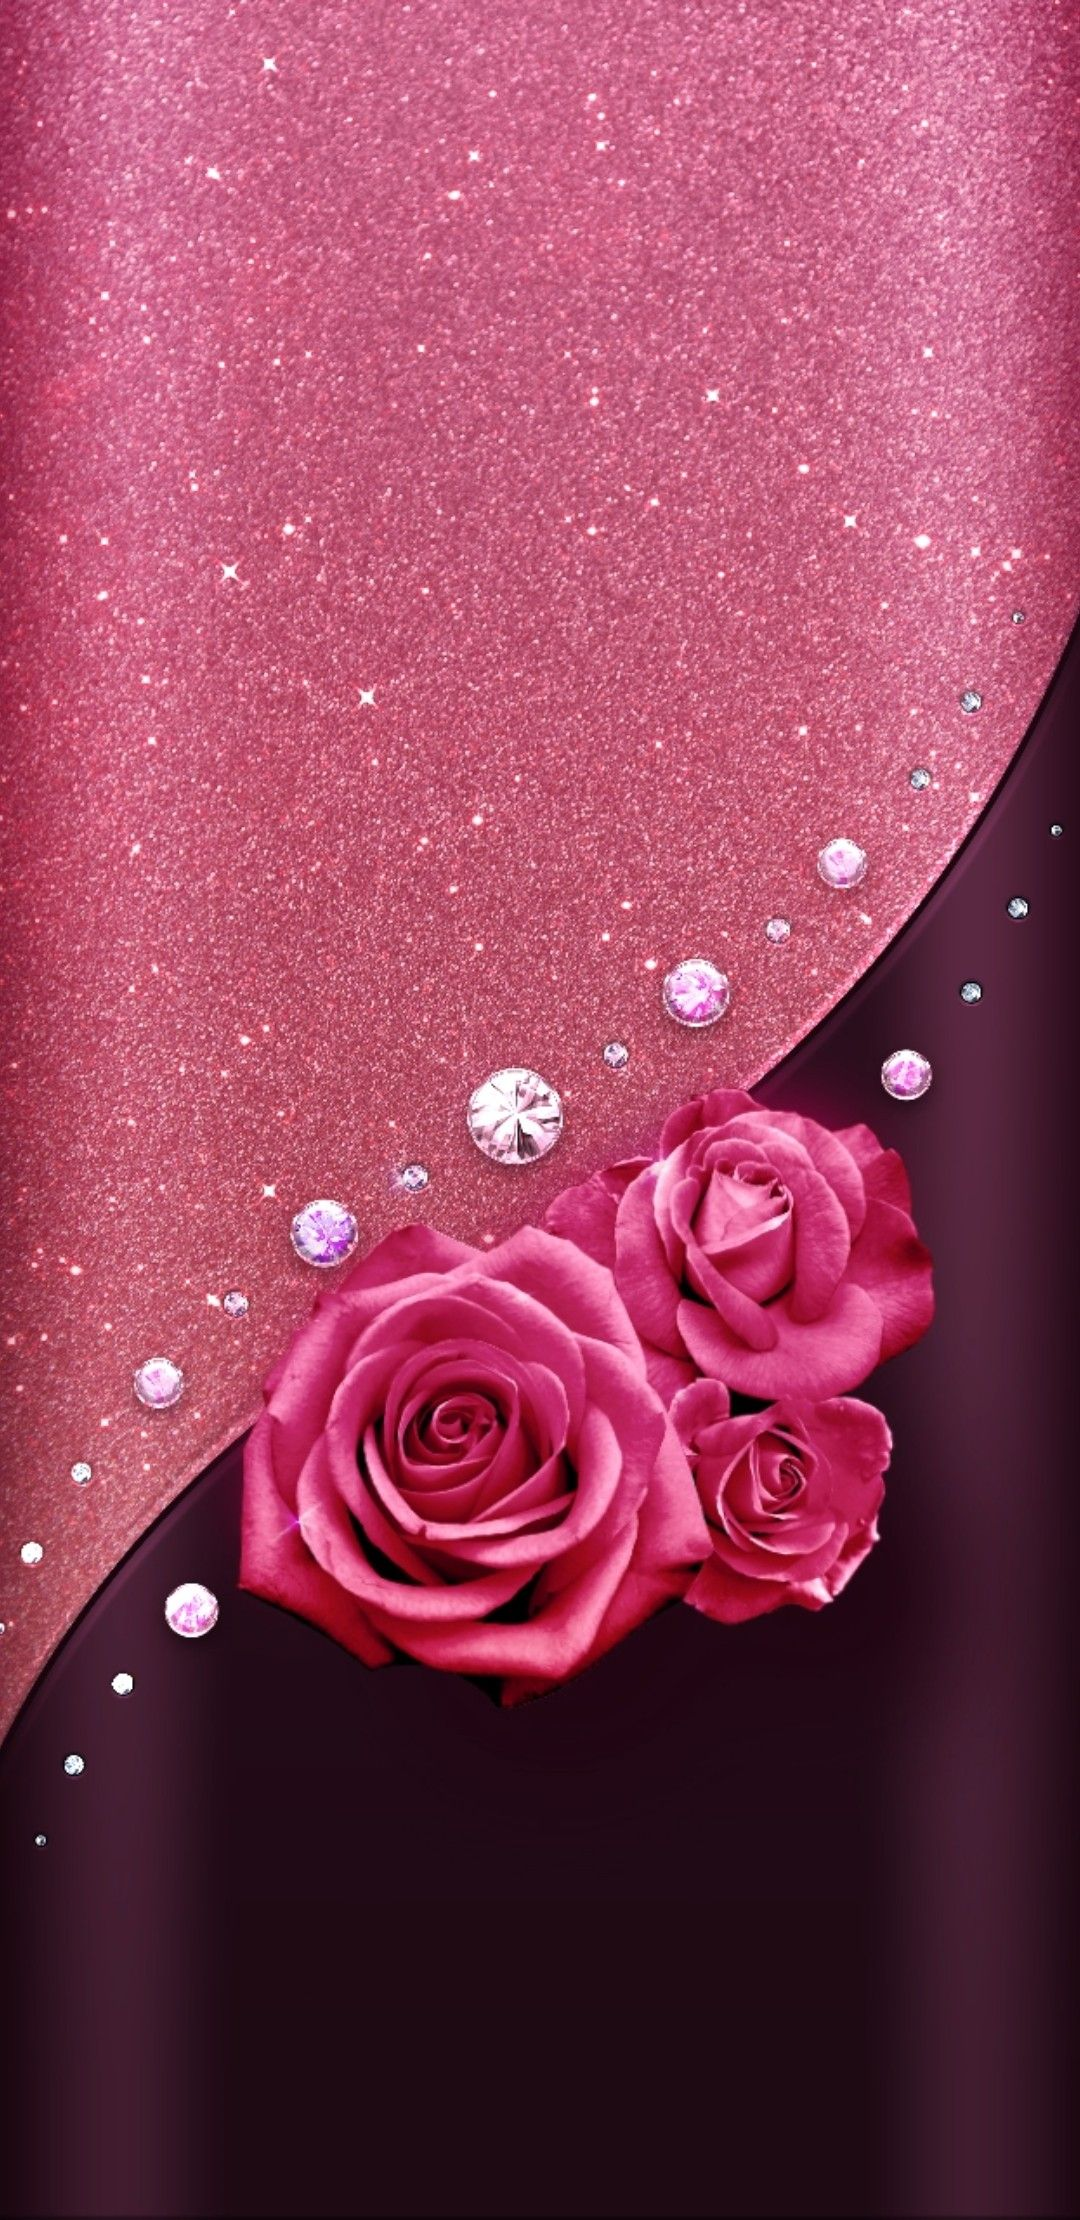 Lovely Pink Roses Hd Wallpaper Love Romance Rose Hearts Quotes